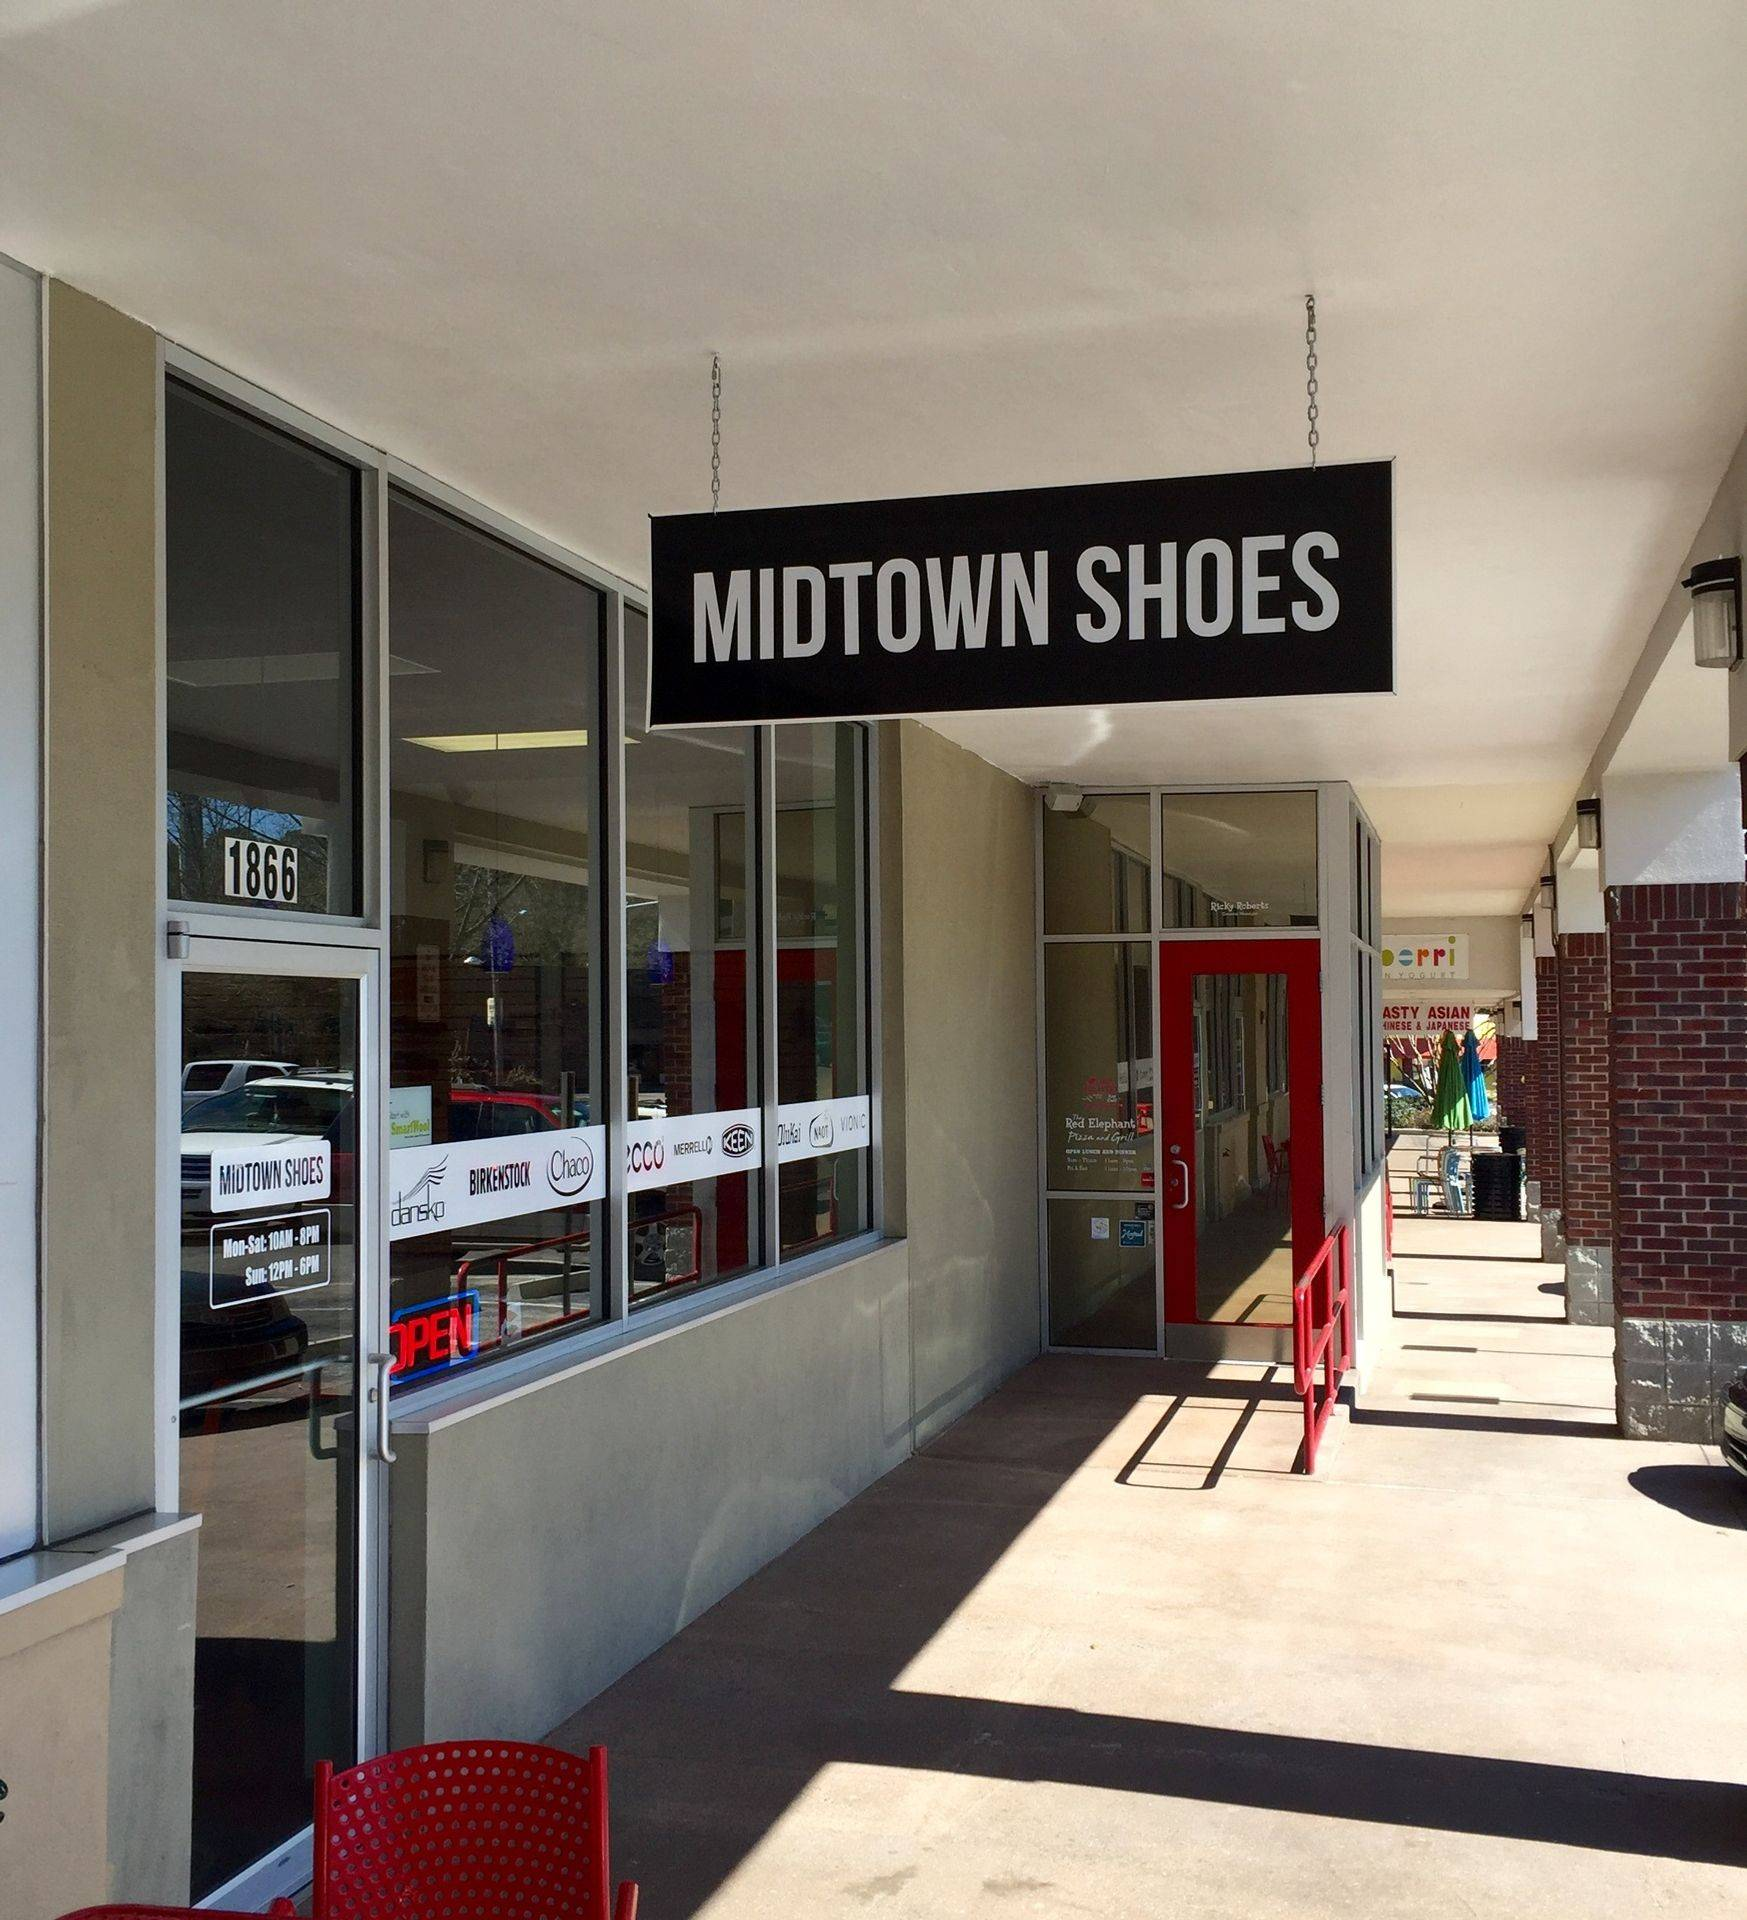 Midtown Shoes Entrance